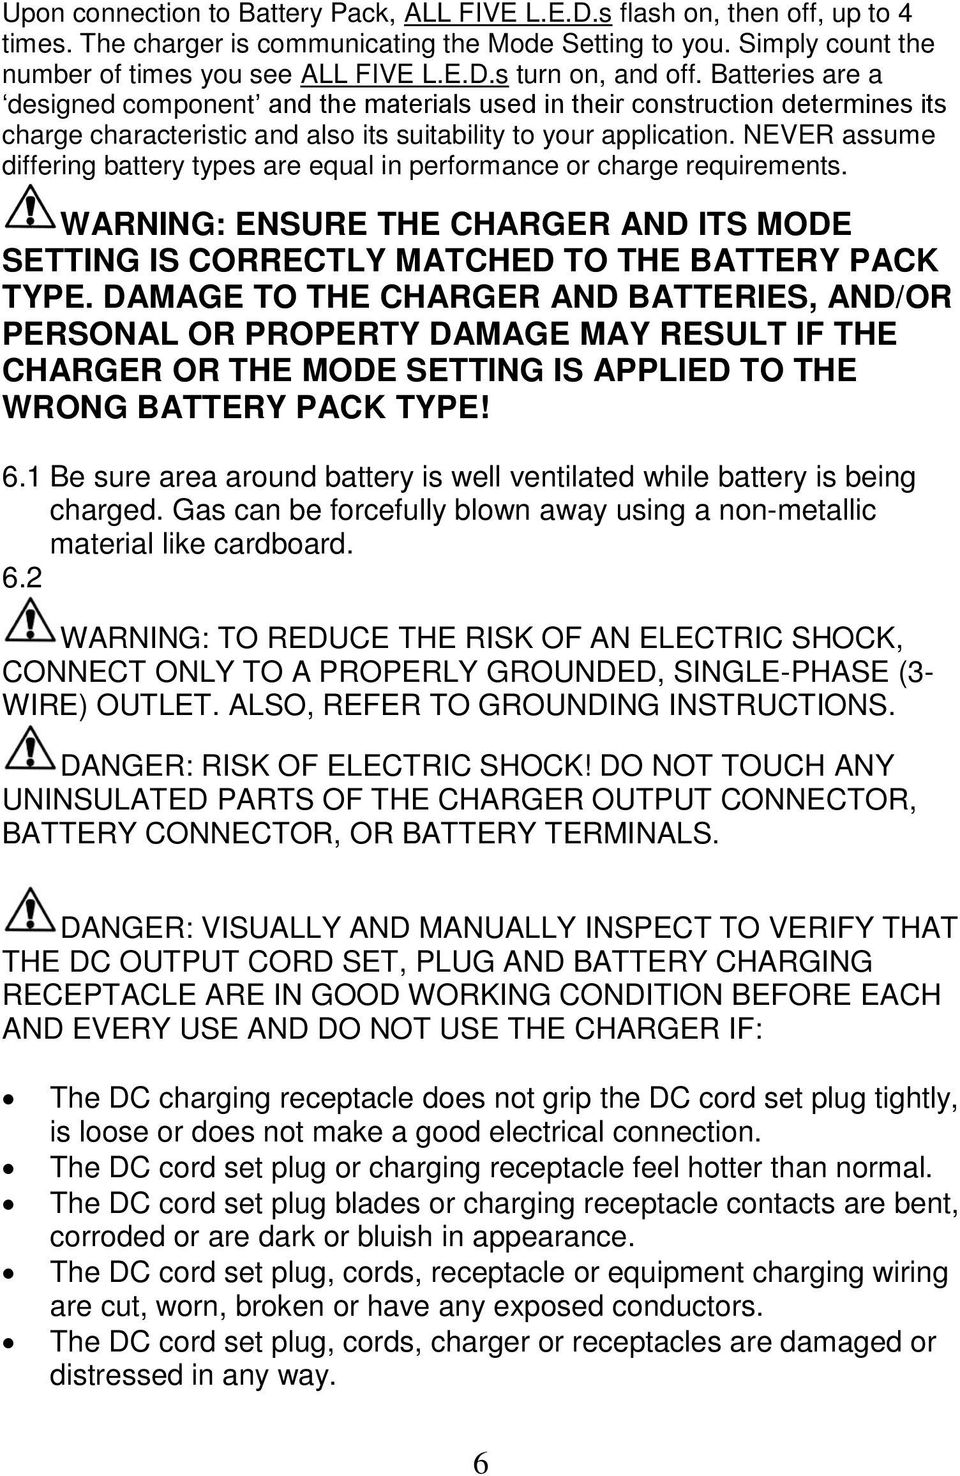 hight resolution of never assume differing battery types are equal in performance or charge requirements warning ensure